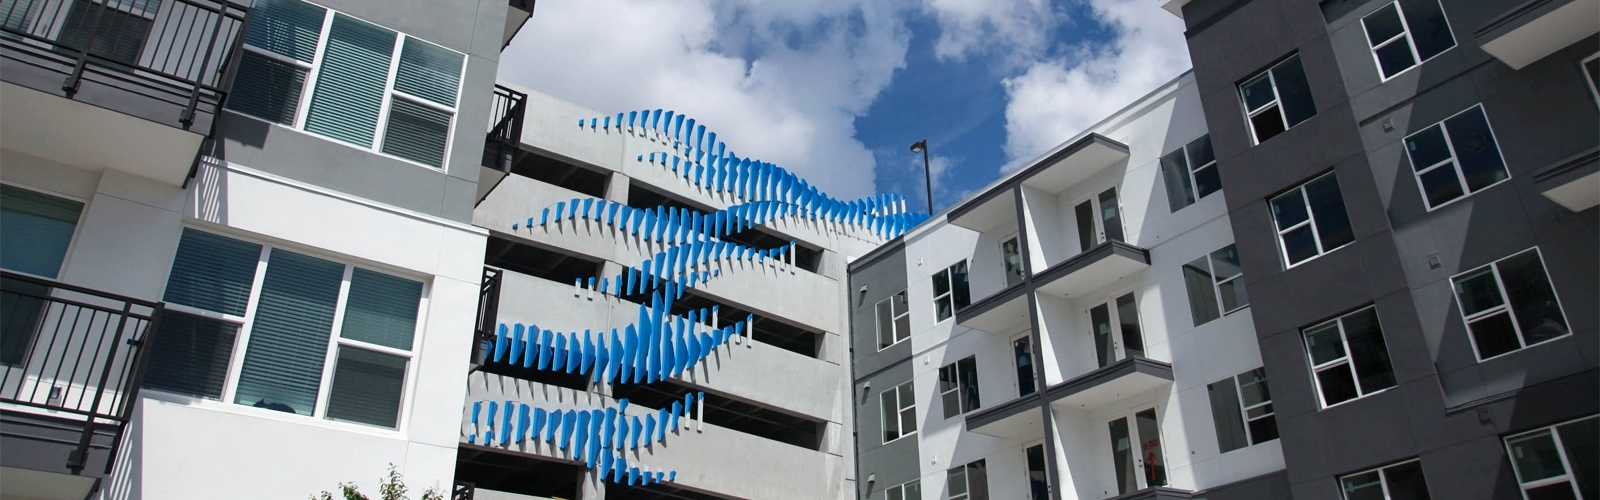 Familiar Design Shapes Many New Tampa Bay Area Apartments Texas Donut Apartment Design